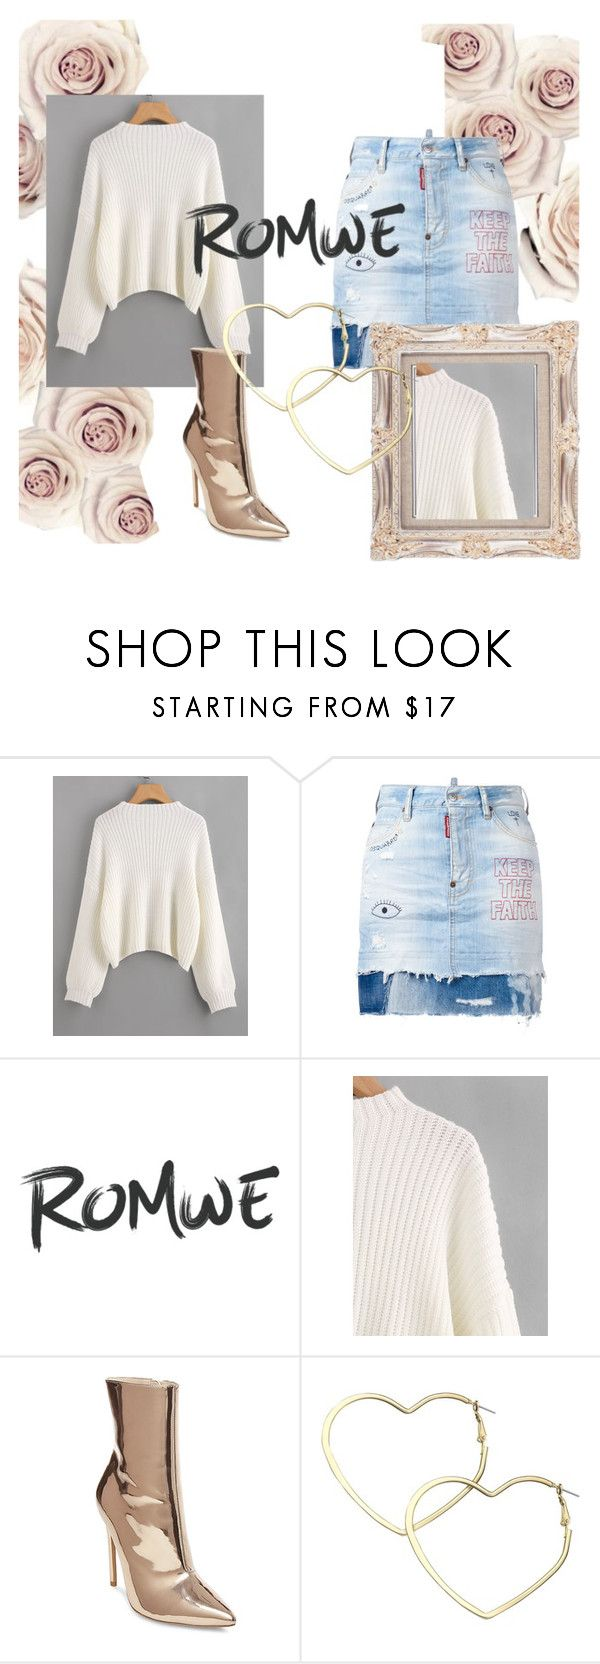 """Chill Factor"" by chelsofly on Polyvore featuring Dsquared2, Steve Madden, Thalia Sodi, Sweater, romwe and contestentry"